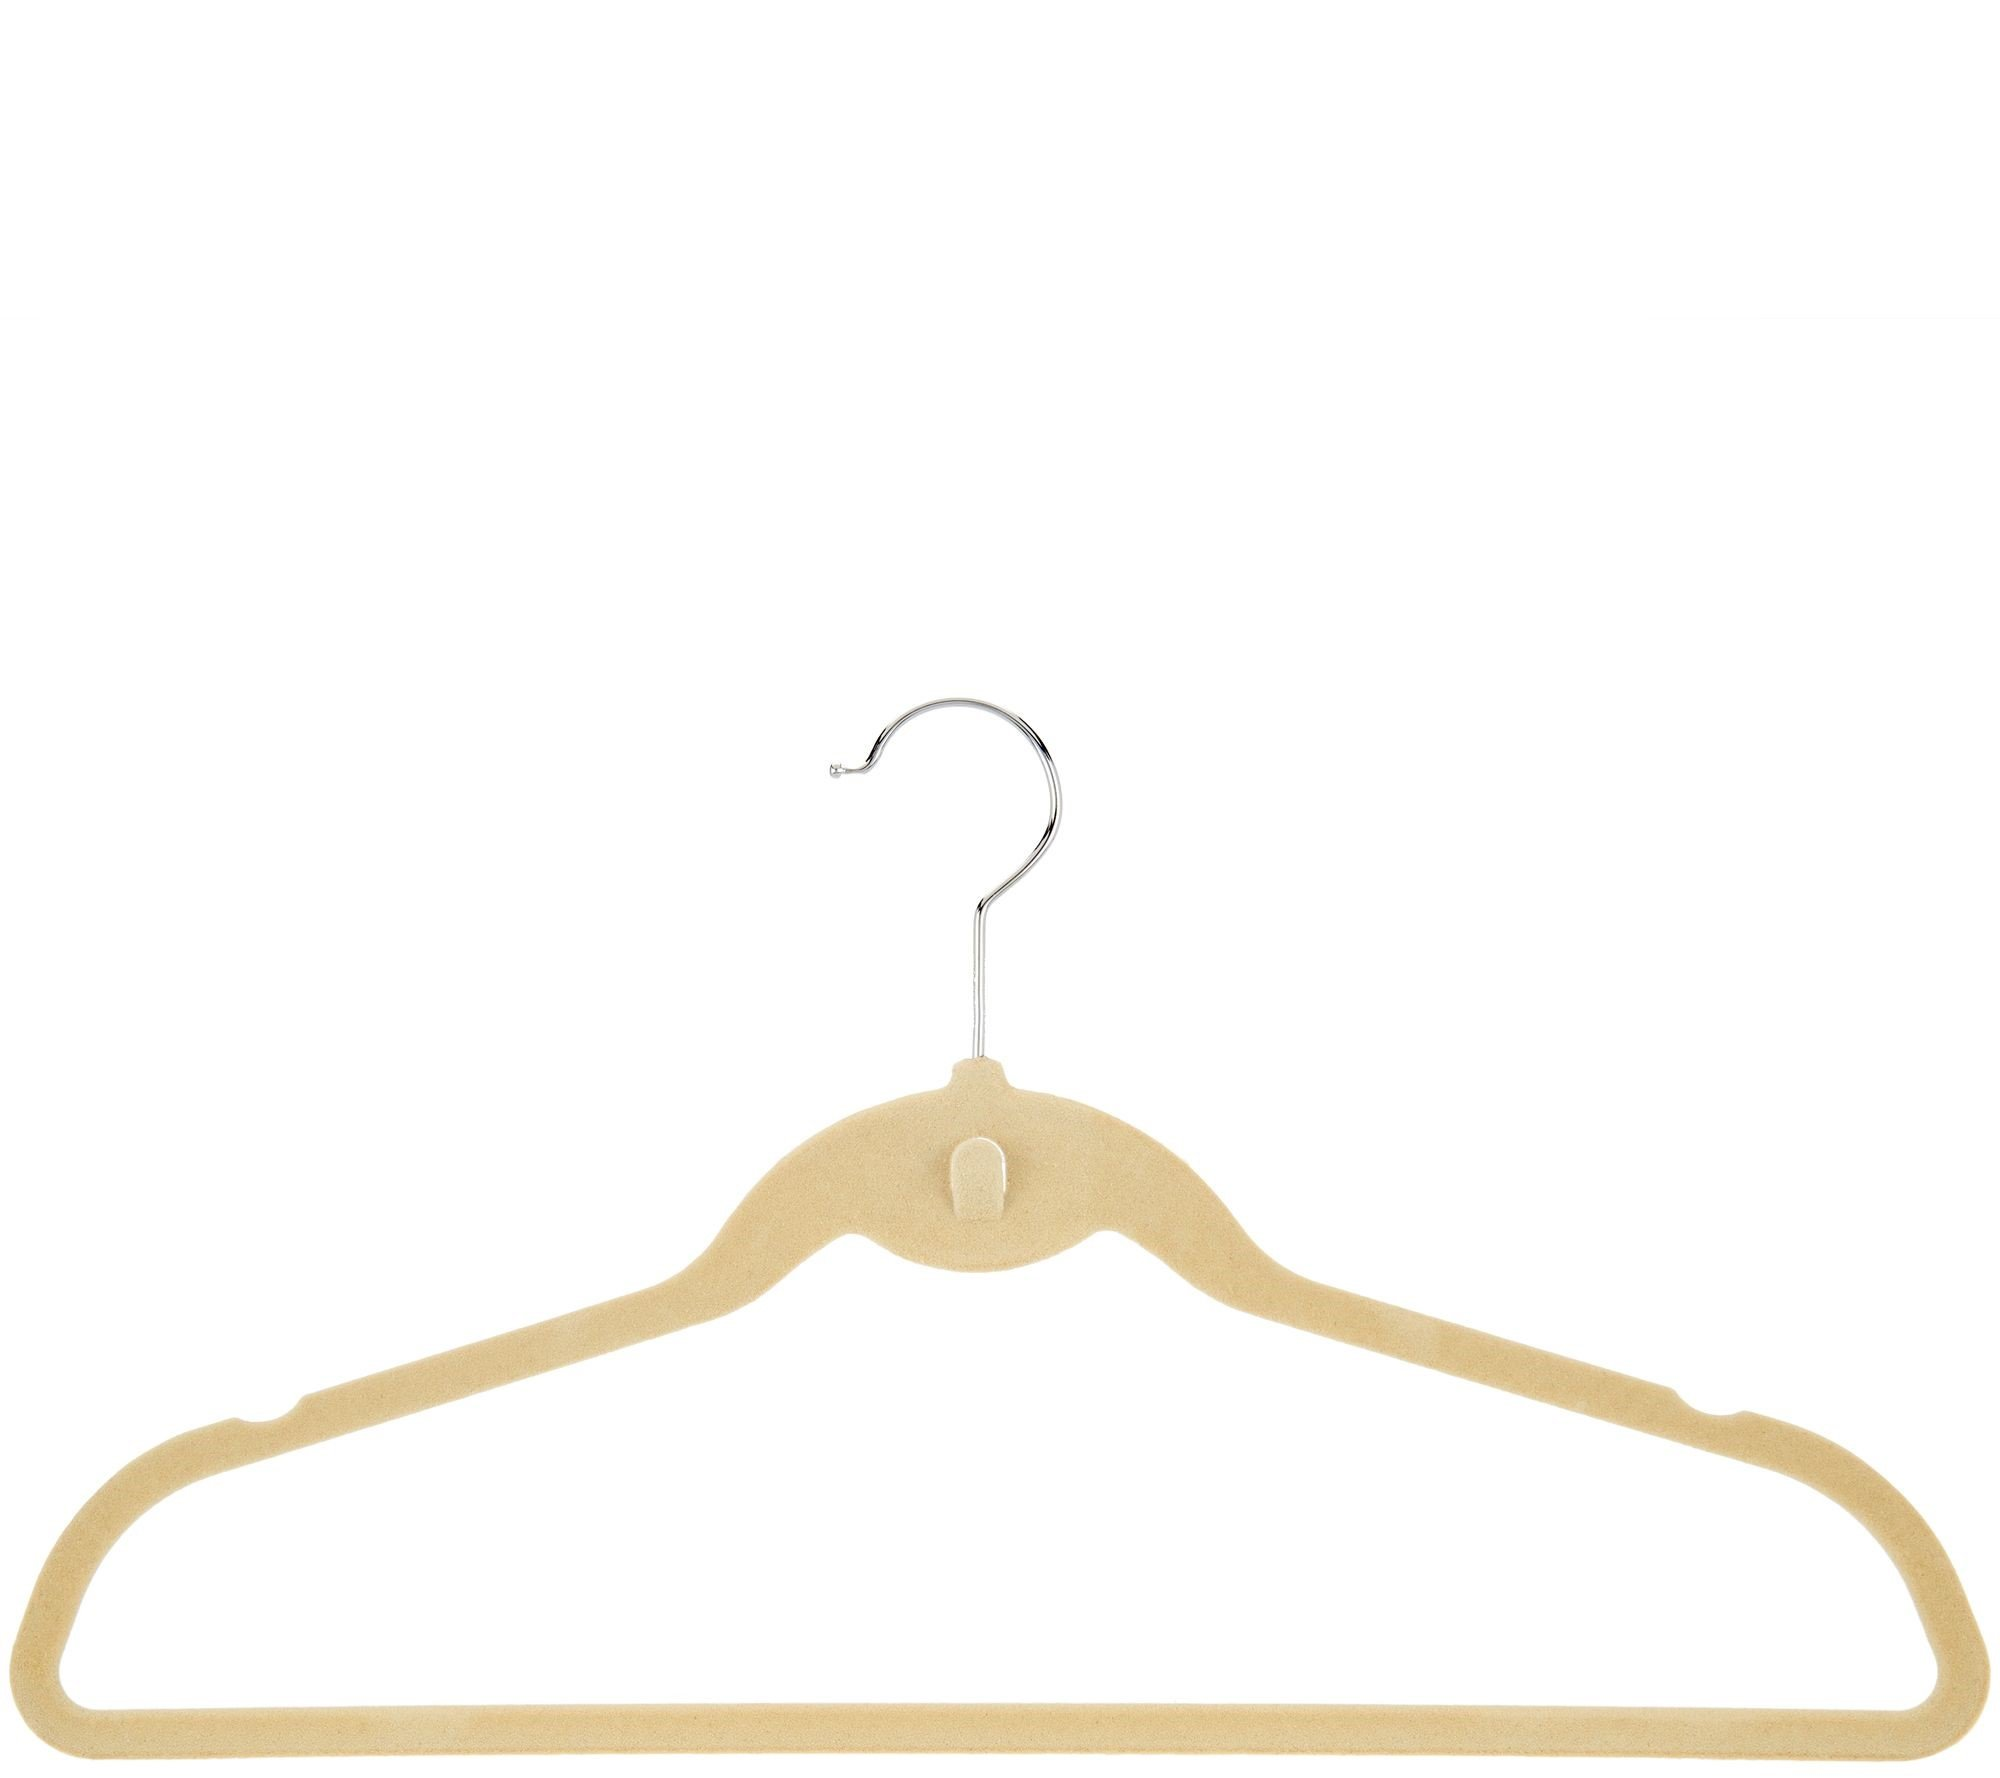 Space Saving, Organizational, Cascading Hangers, Cascade Hangers in BLACK - Pack 40 Space Saving Cascading by Dead Sea Spa Care (Image #1)